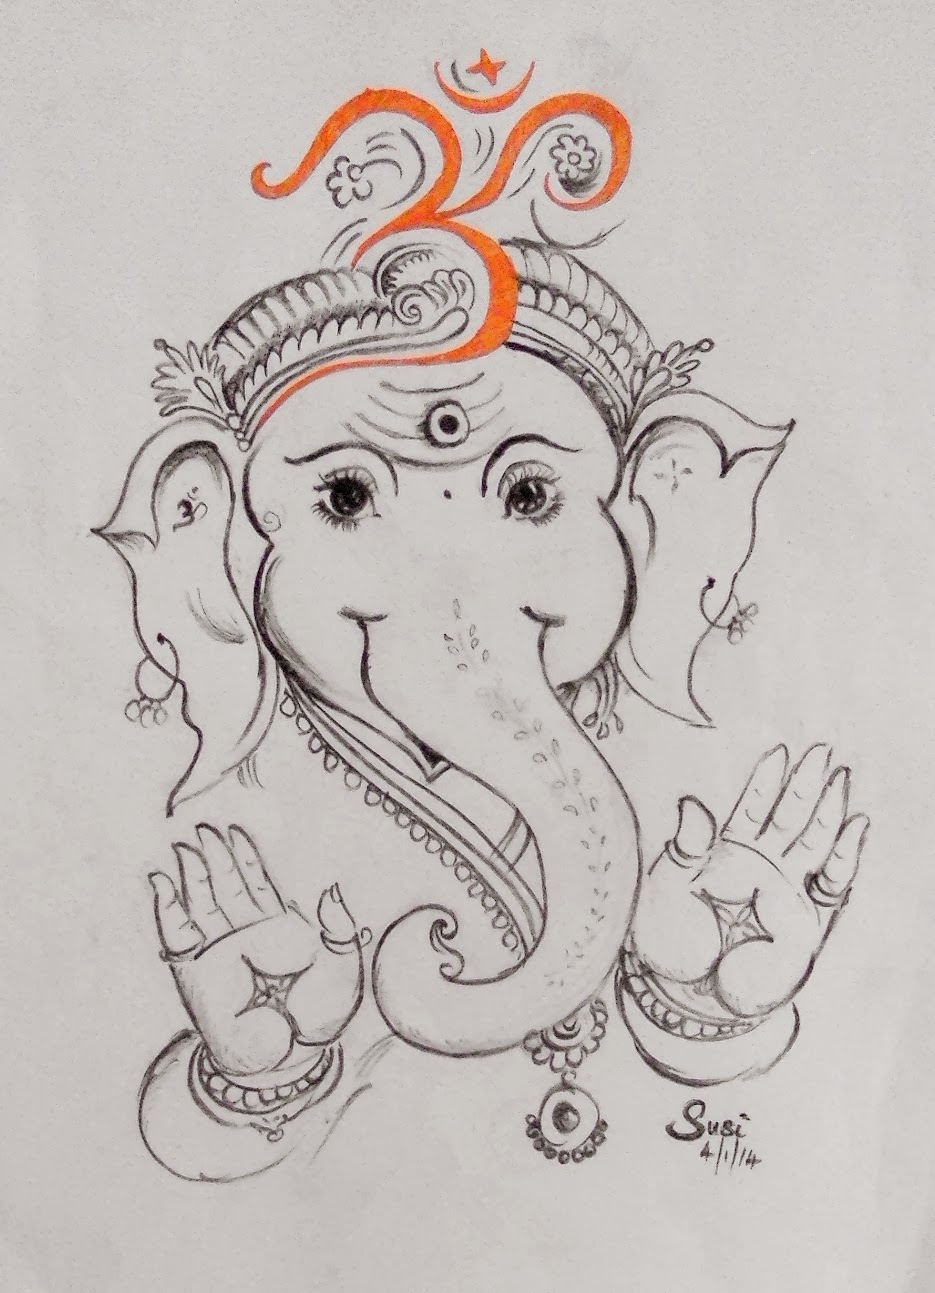 The first picture susil drew in 2014 is a sketch of lord ganesha inspired by an art by an artist called padmavasan